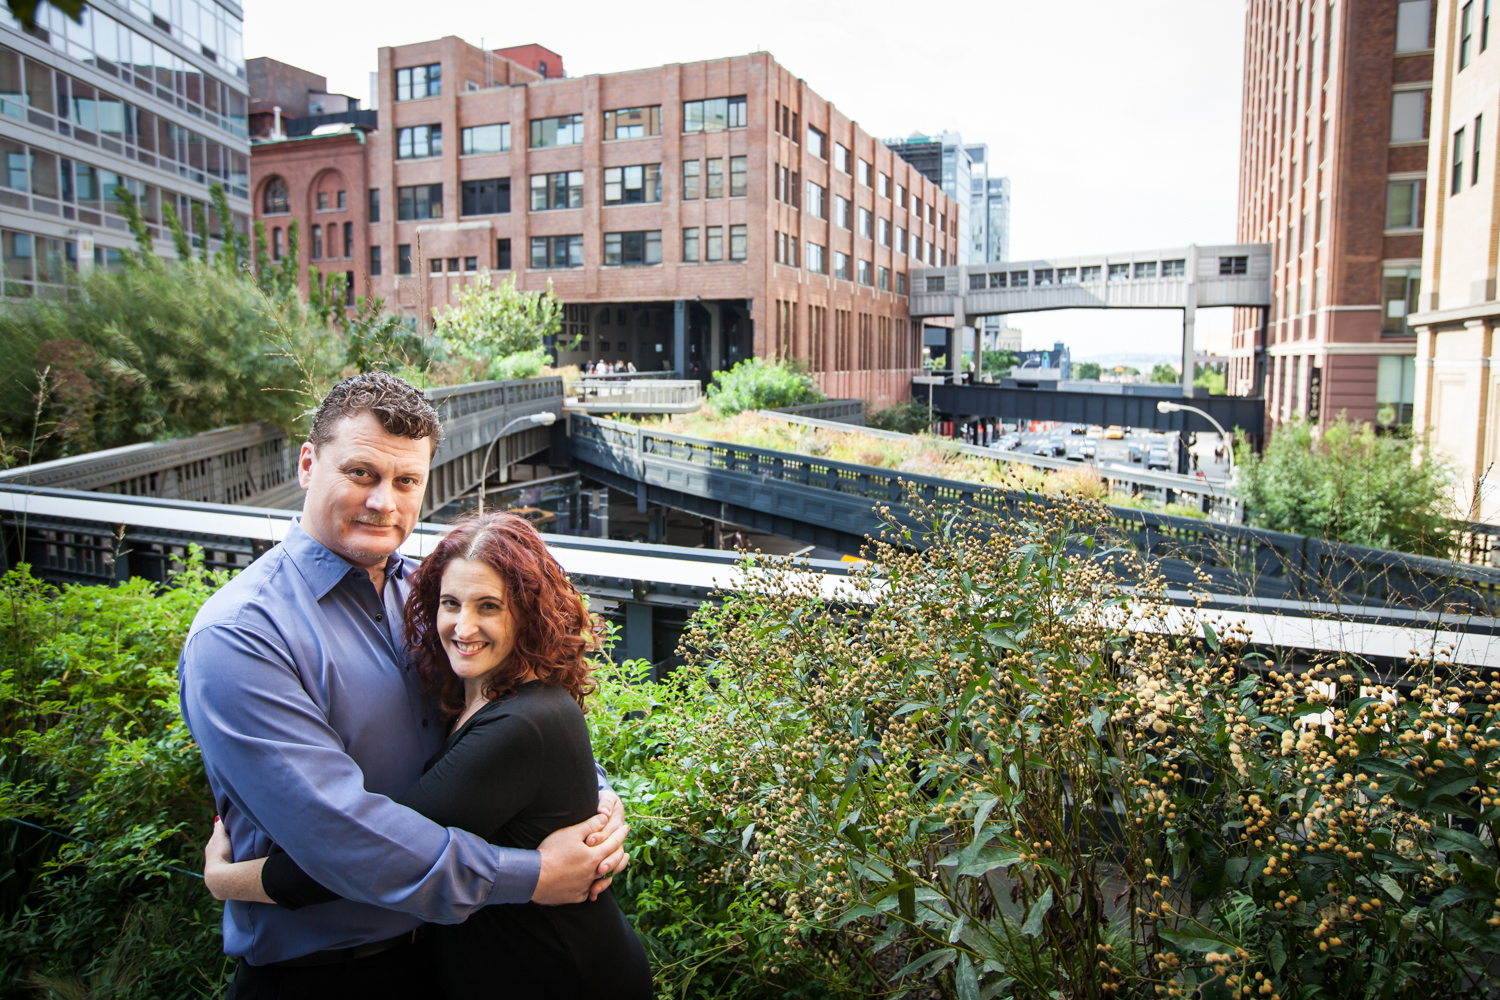 High Line engagement photos of couple in front of observation deck